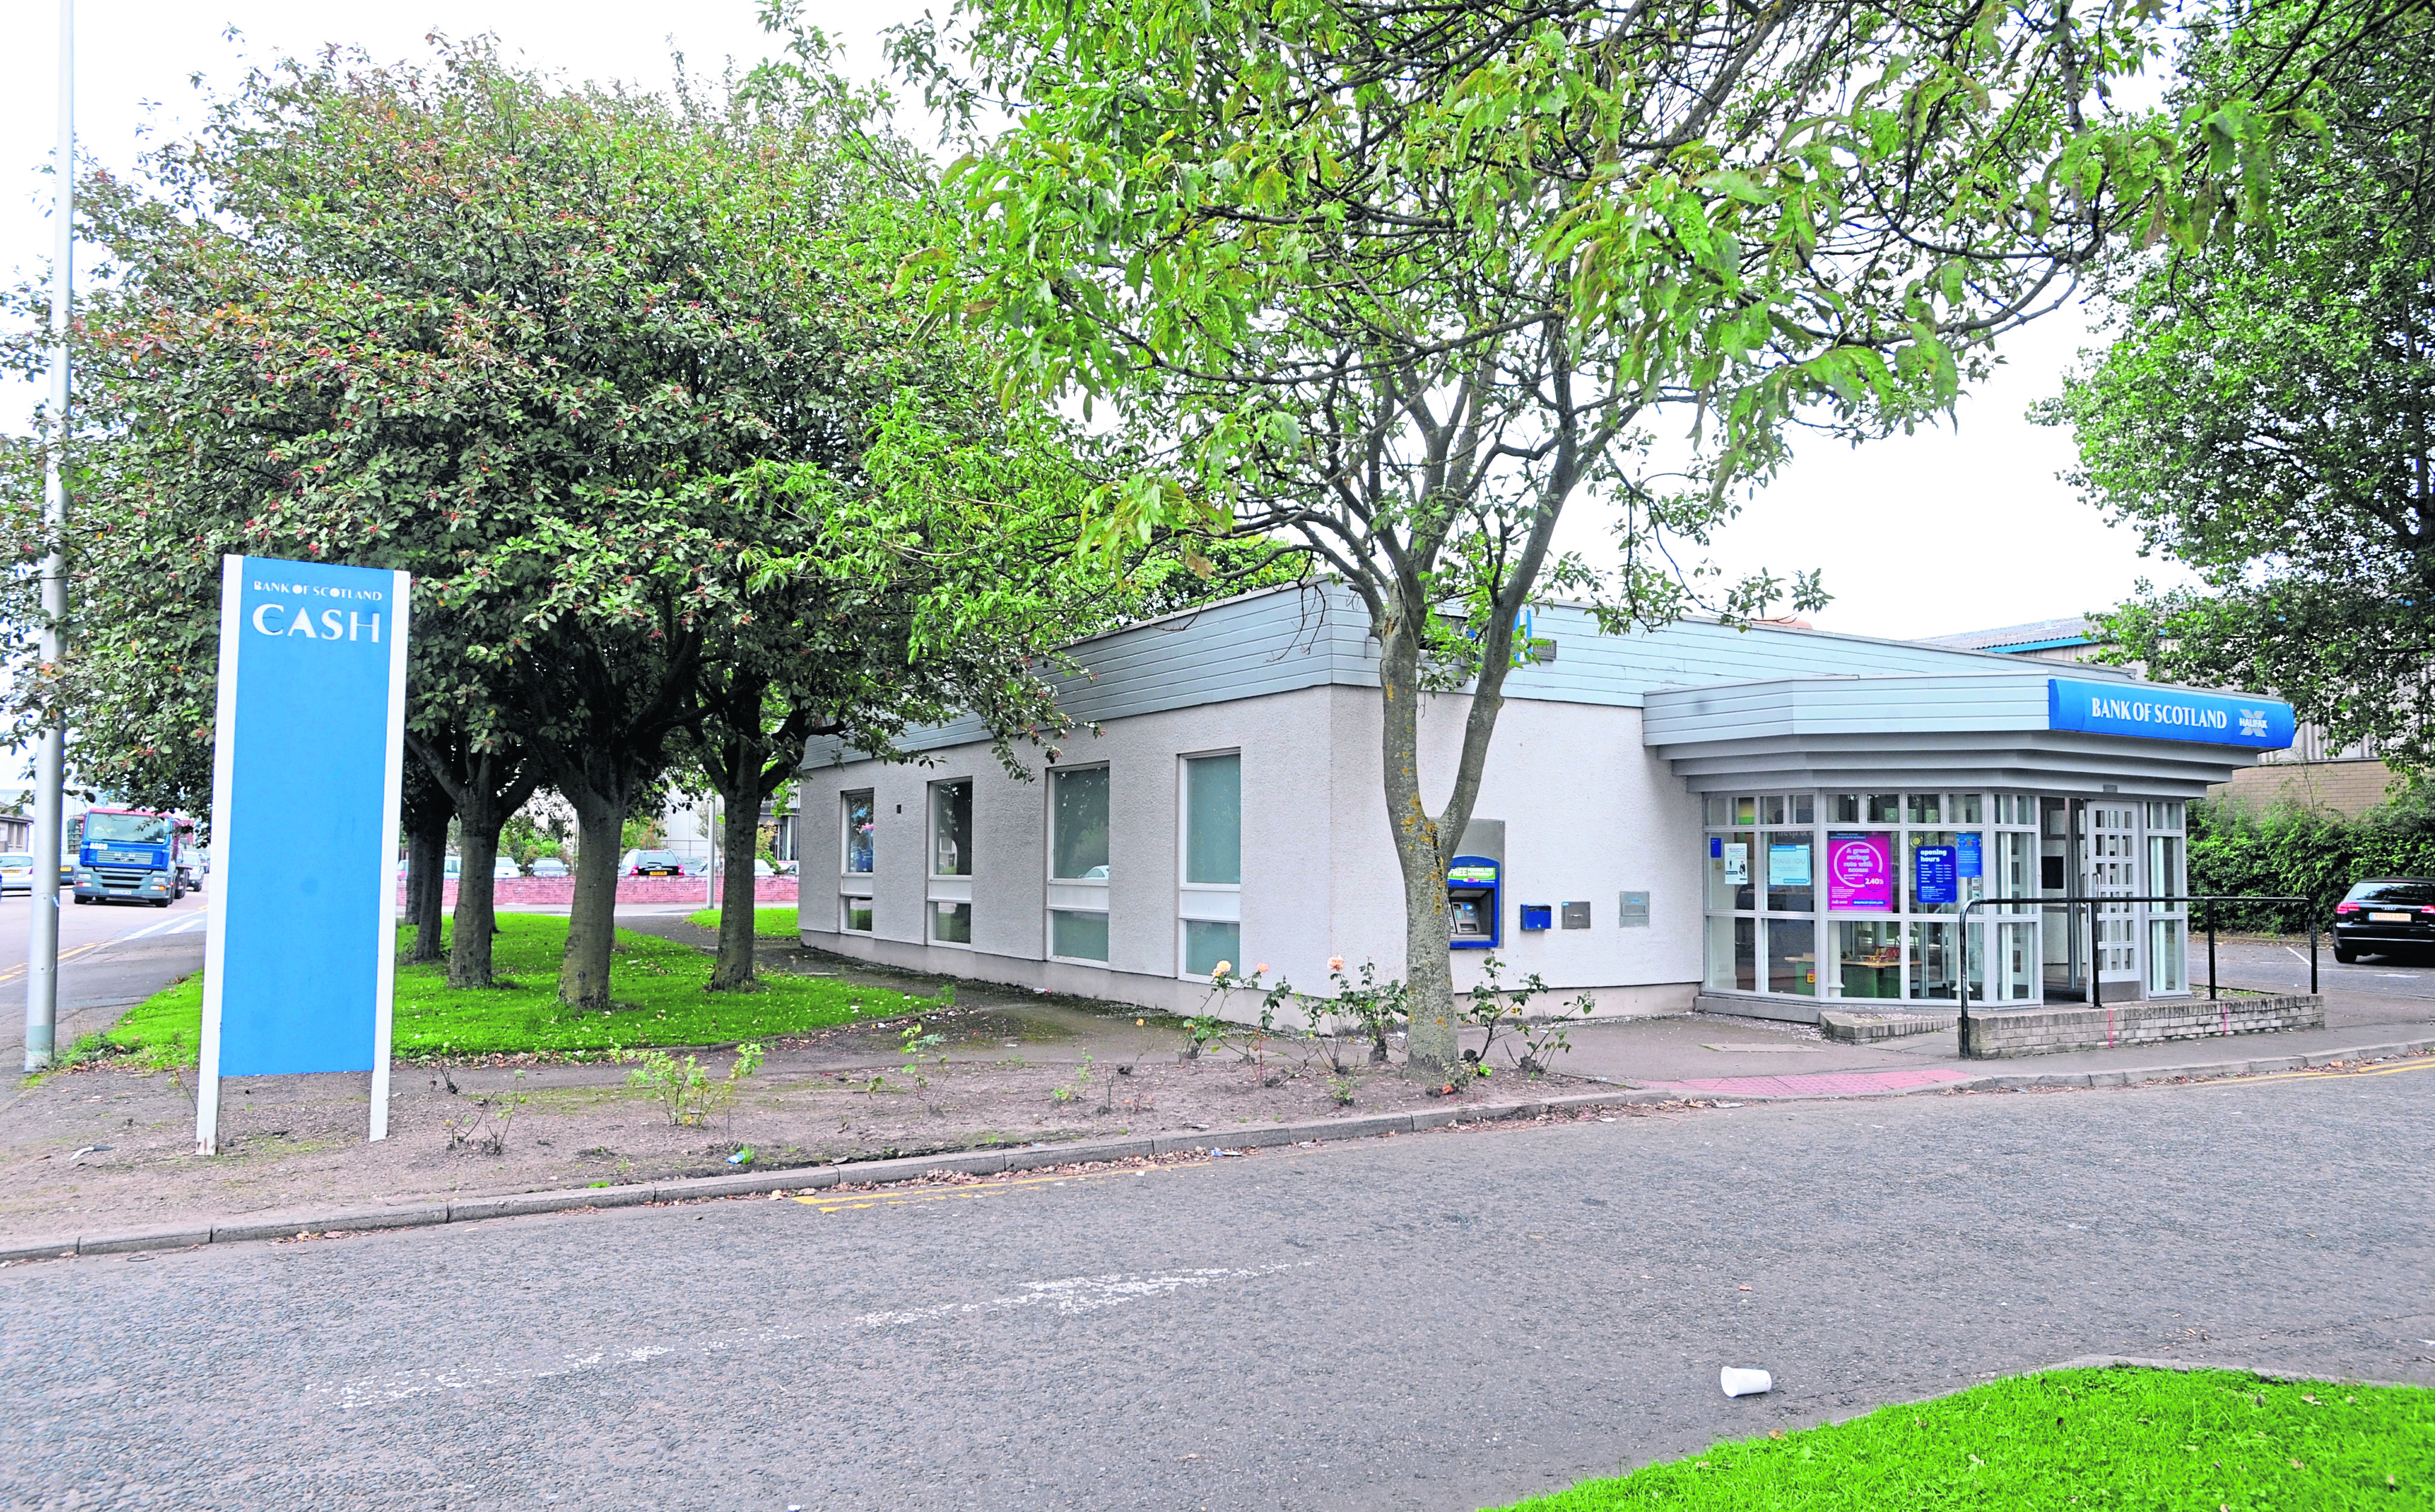 The Bank of Scotland on Greenwell Road, Tullos.